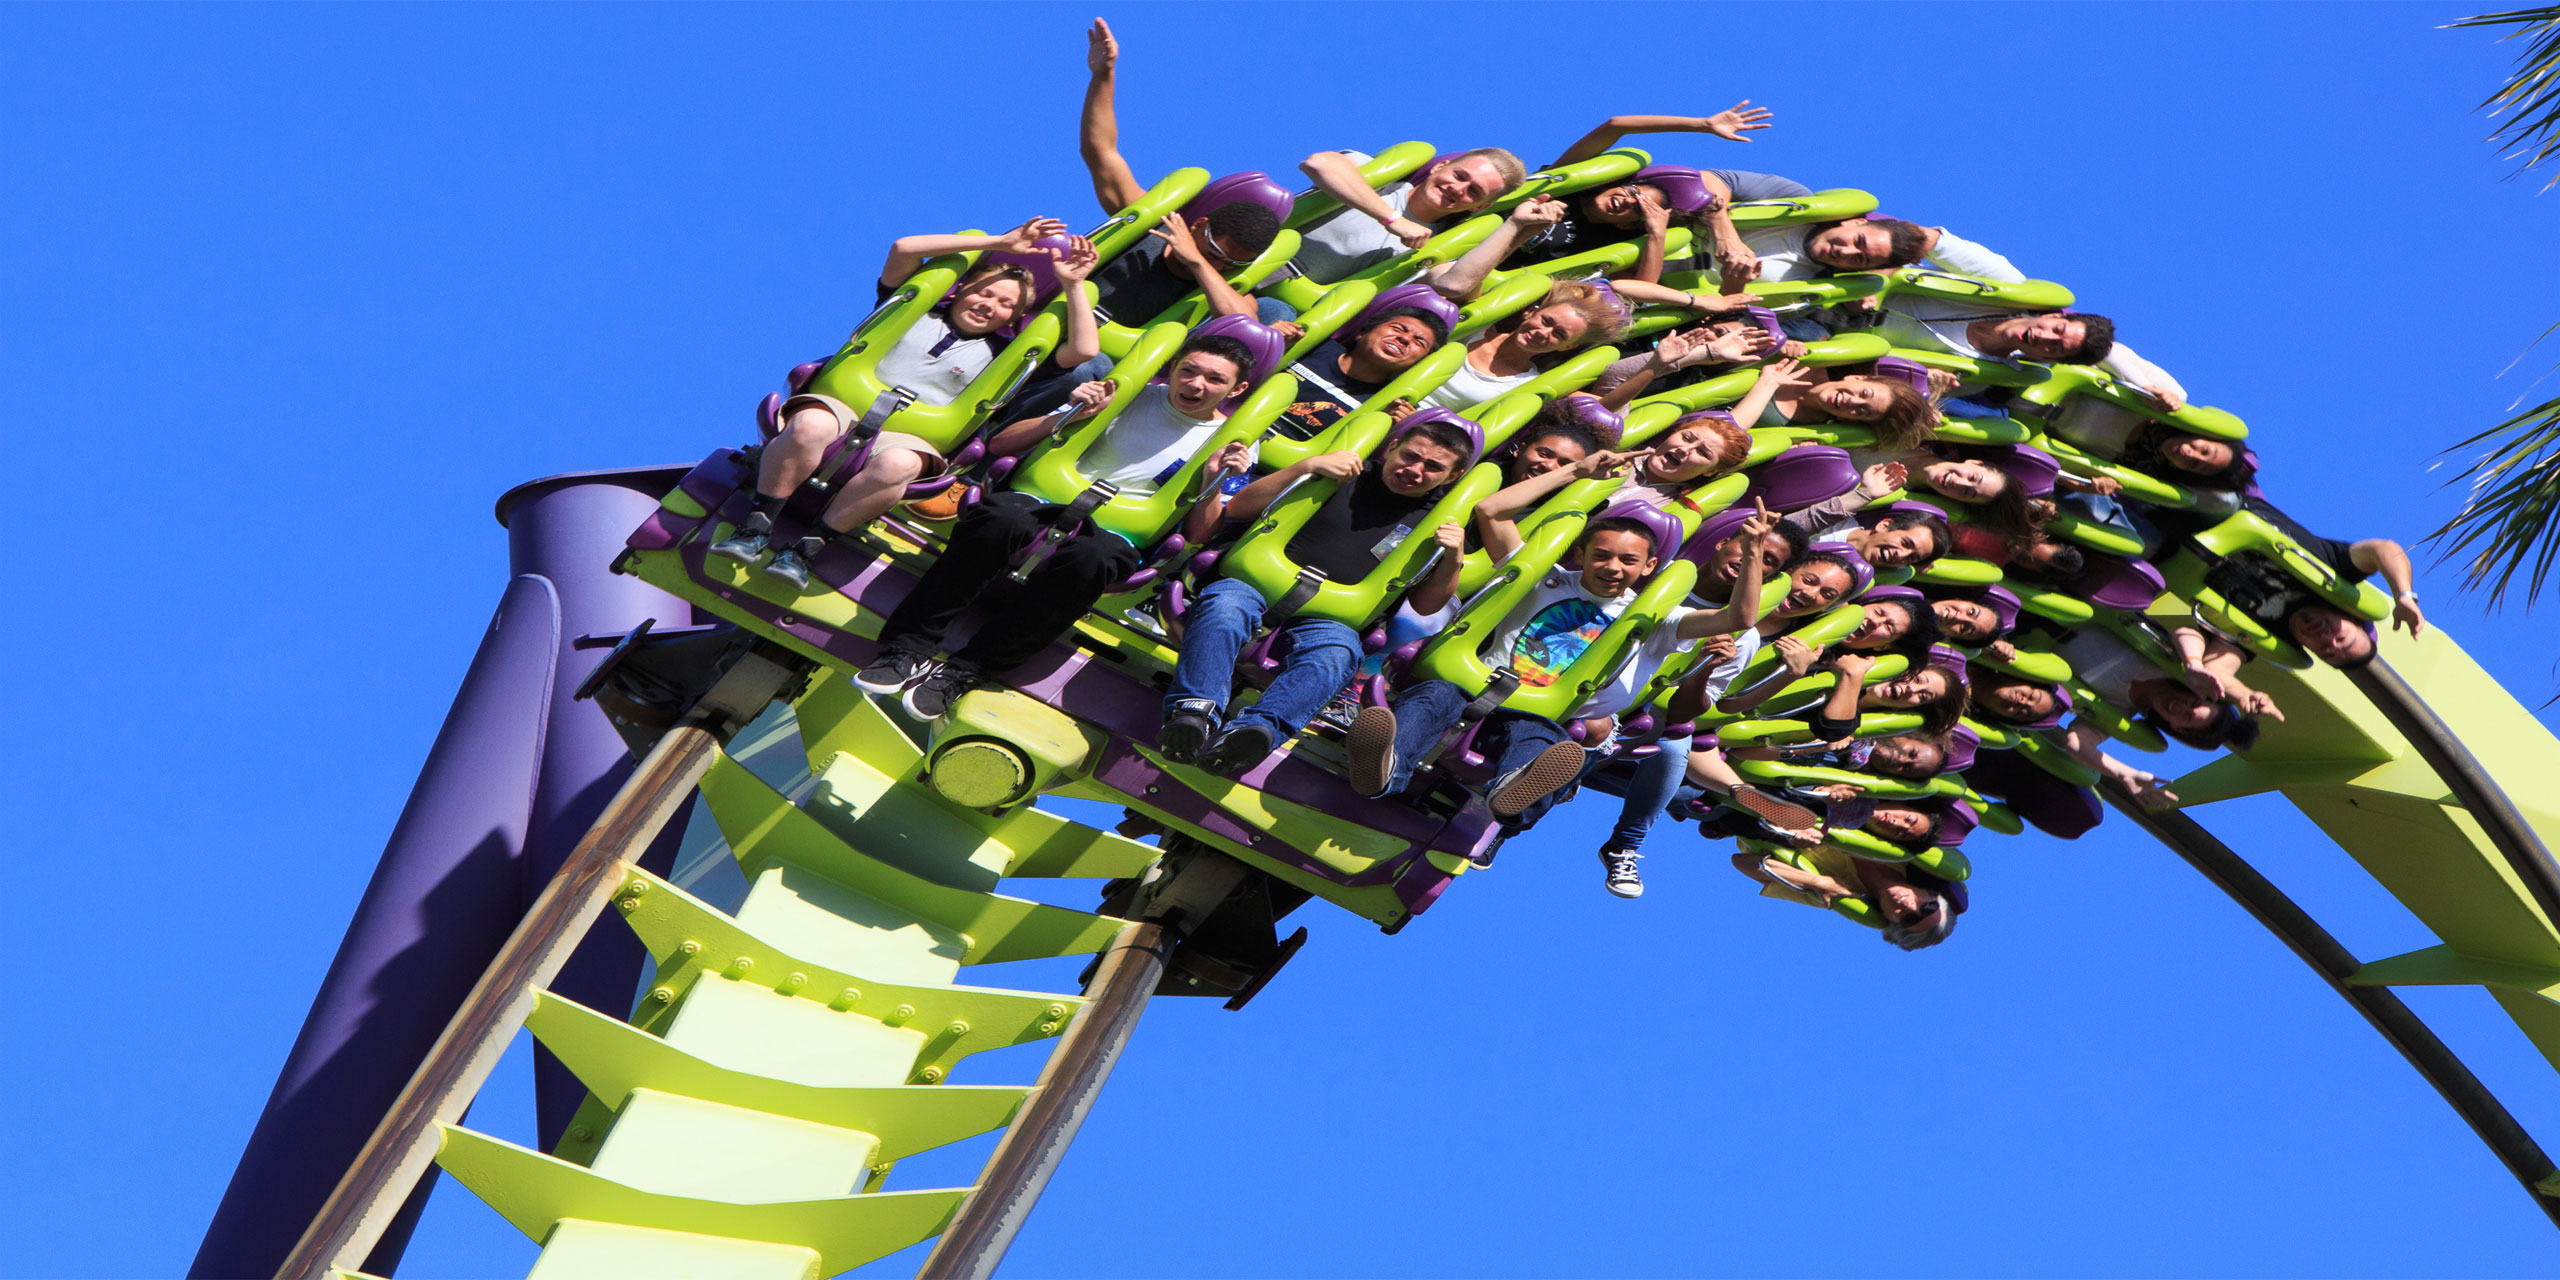 Thrill Roller Coaster; Courtesy of Cassiohabib/Shutterstock.com